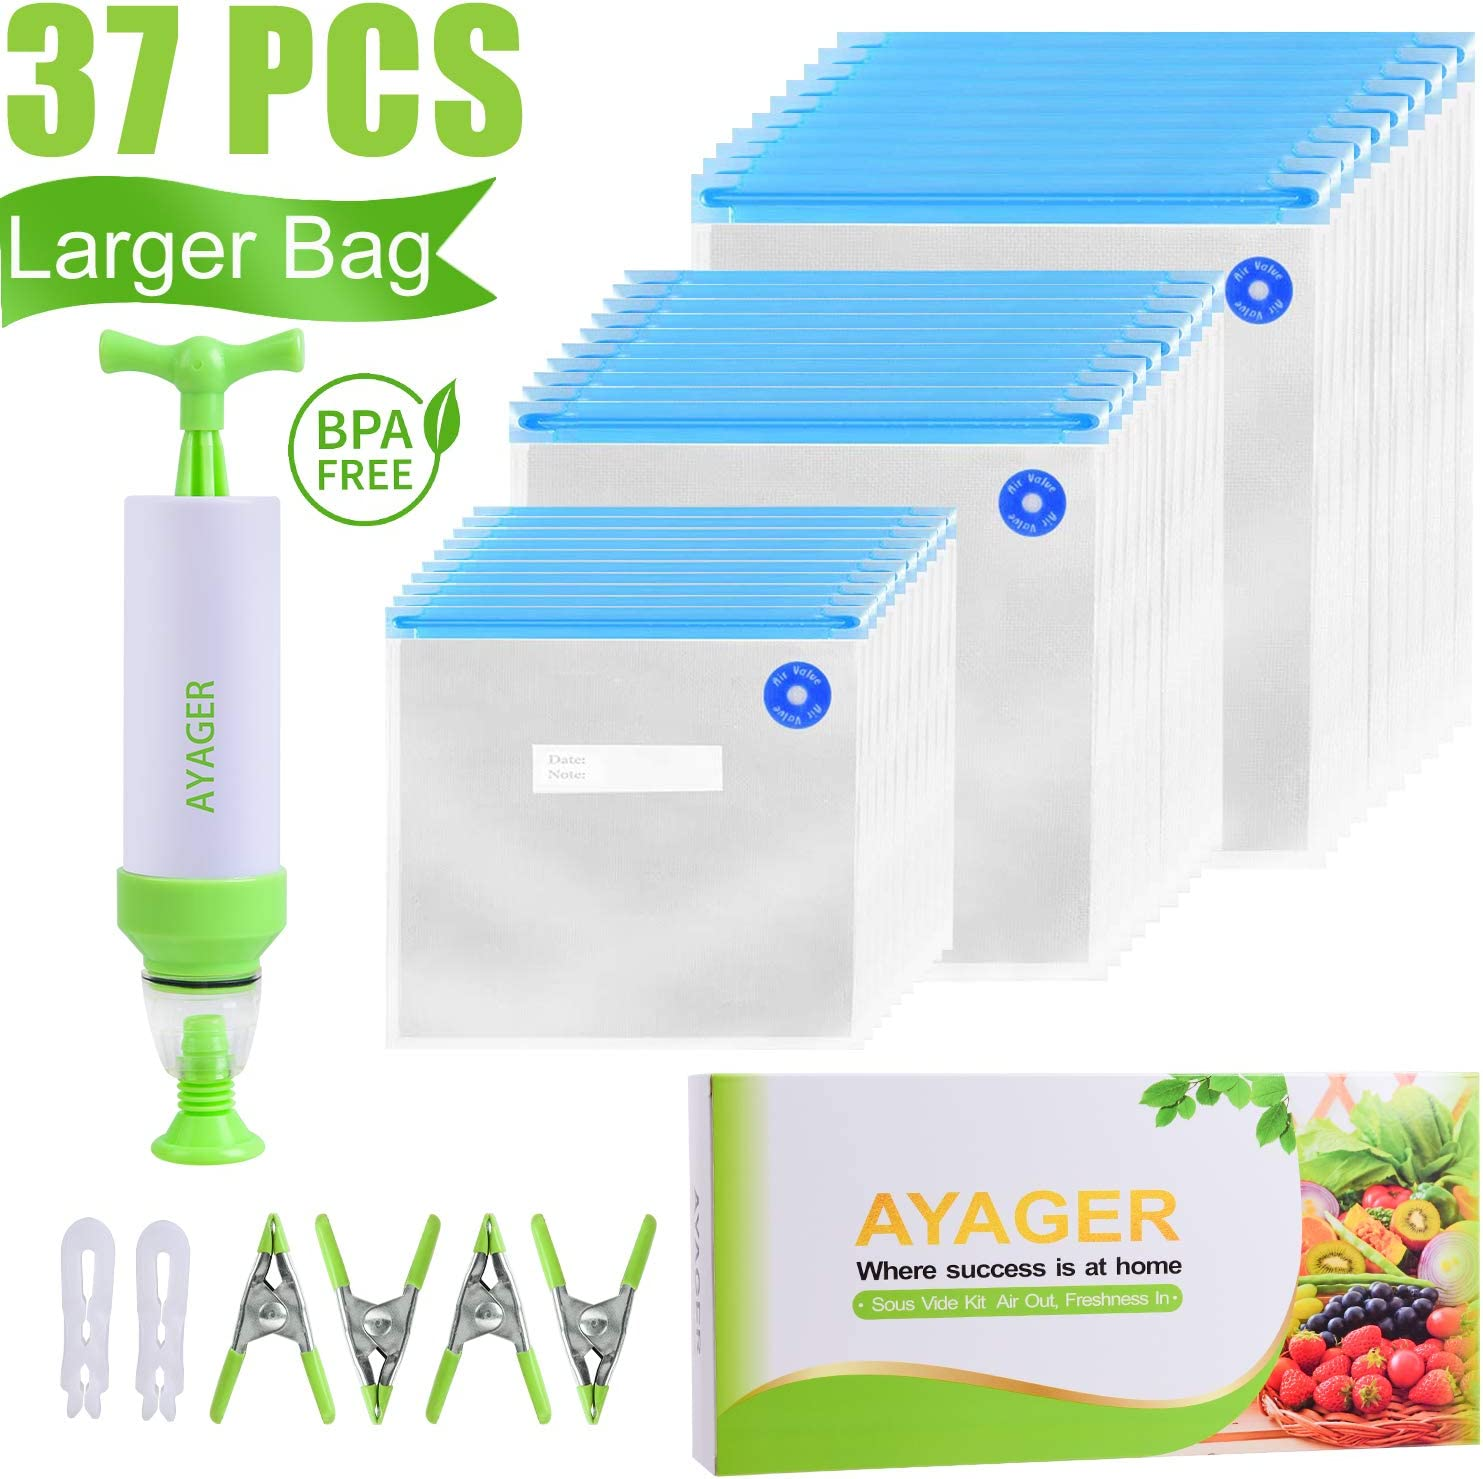 Sous Vide Bags 30 Reusable Vacuum Food Storage Bags for Sous Vide, 3 Sizes Large Sous Vide Bags with Pump, 4 Sous Vide Bag Clips for Food Storage and Chefsteps, Anova, Joule, Wancle Sous Vide Cooking